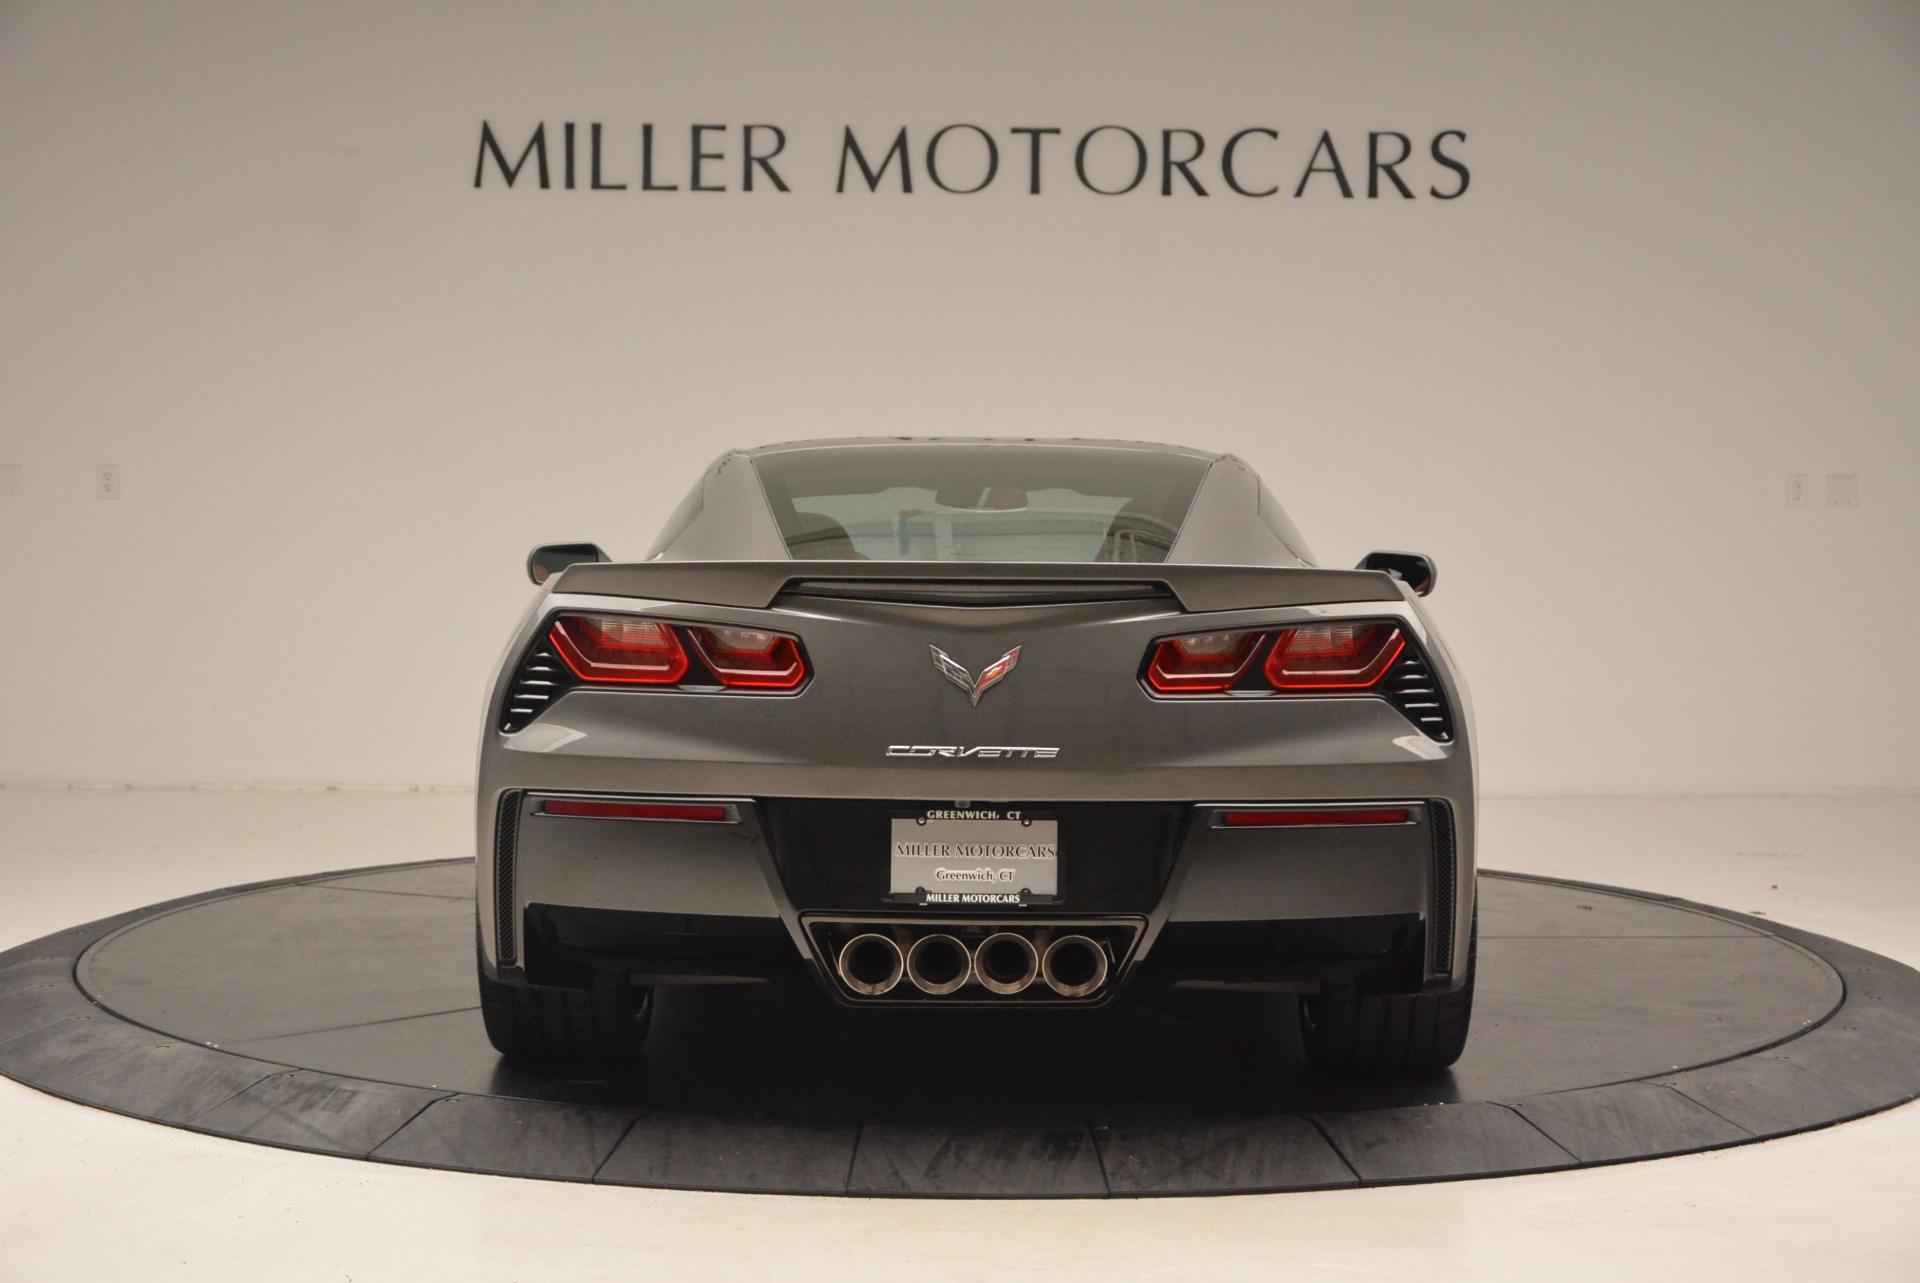 Used 2015 Chevrolet Corvette Stingray Z51 For Sale In Greenwich, CT 1589_p6